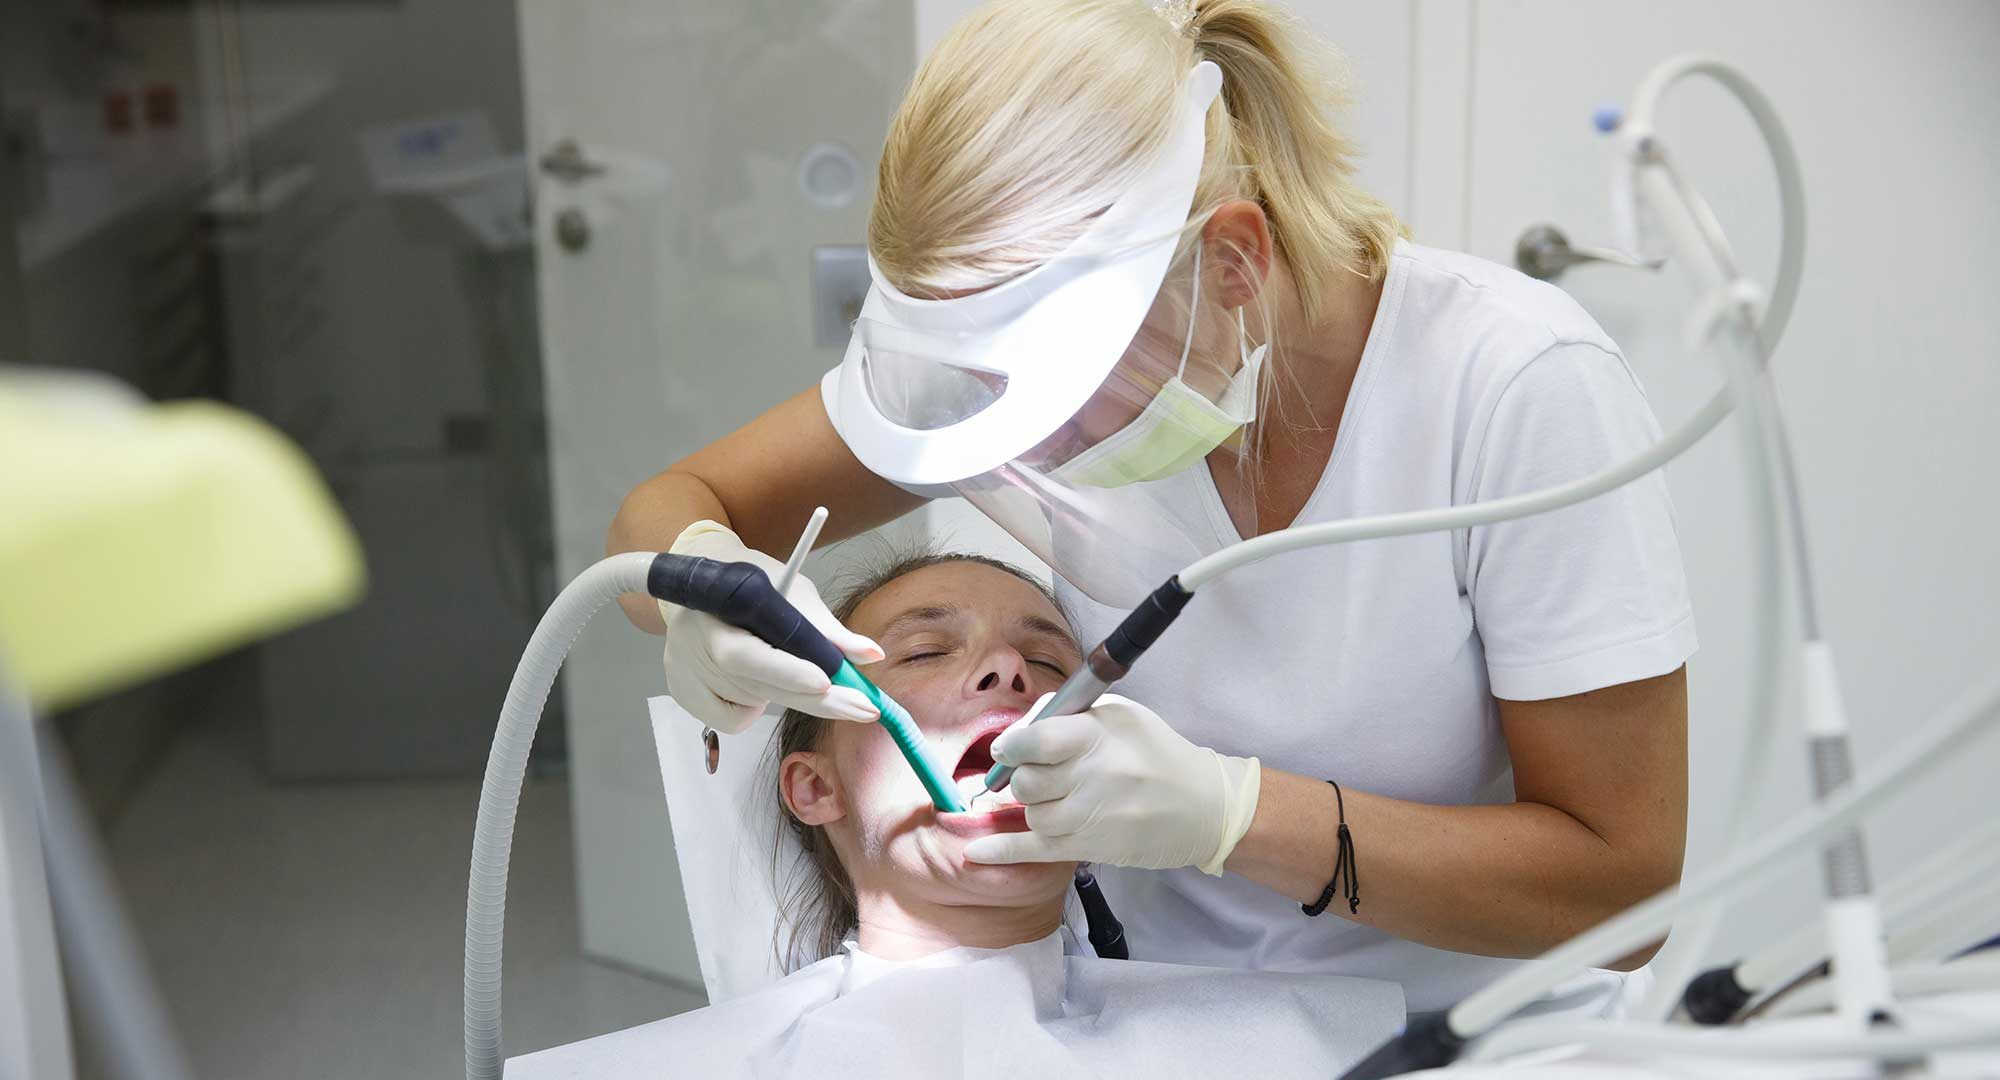 hygienist working under direct access